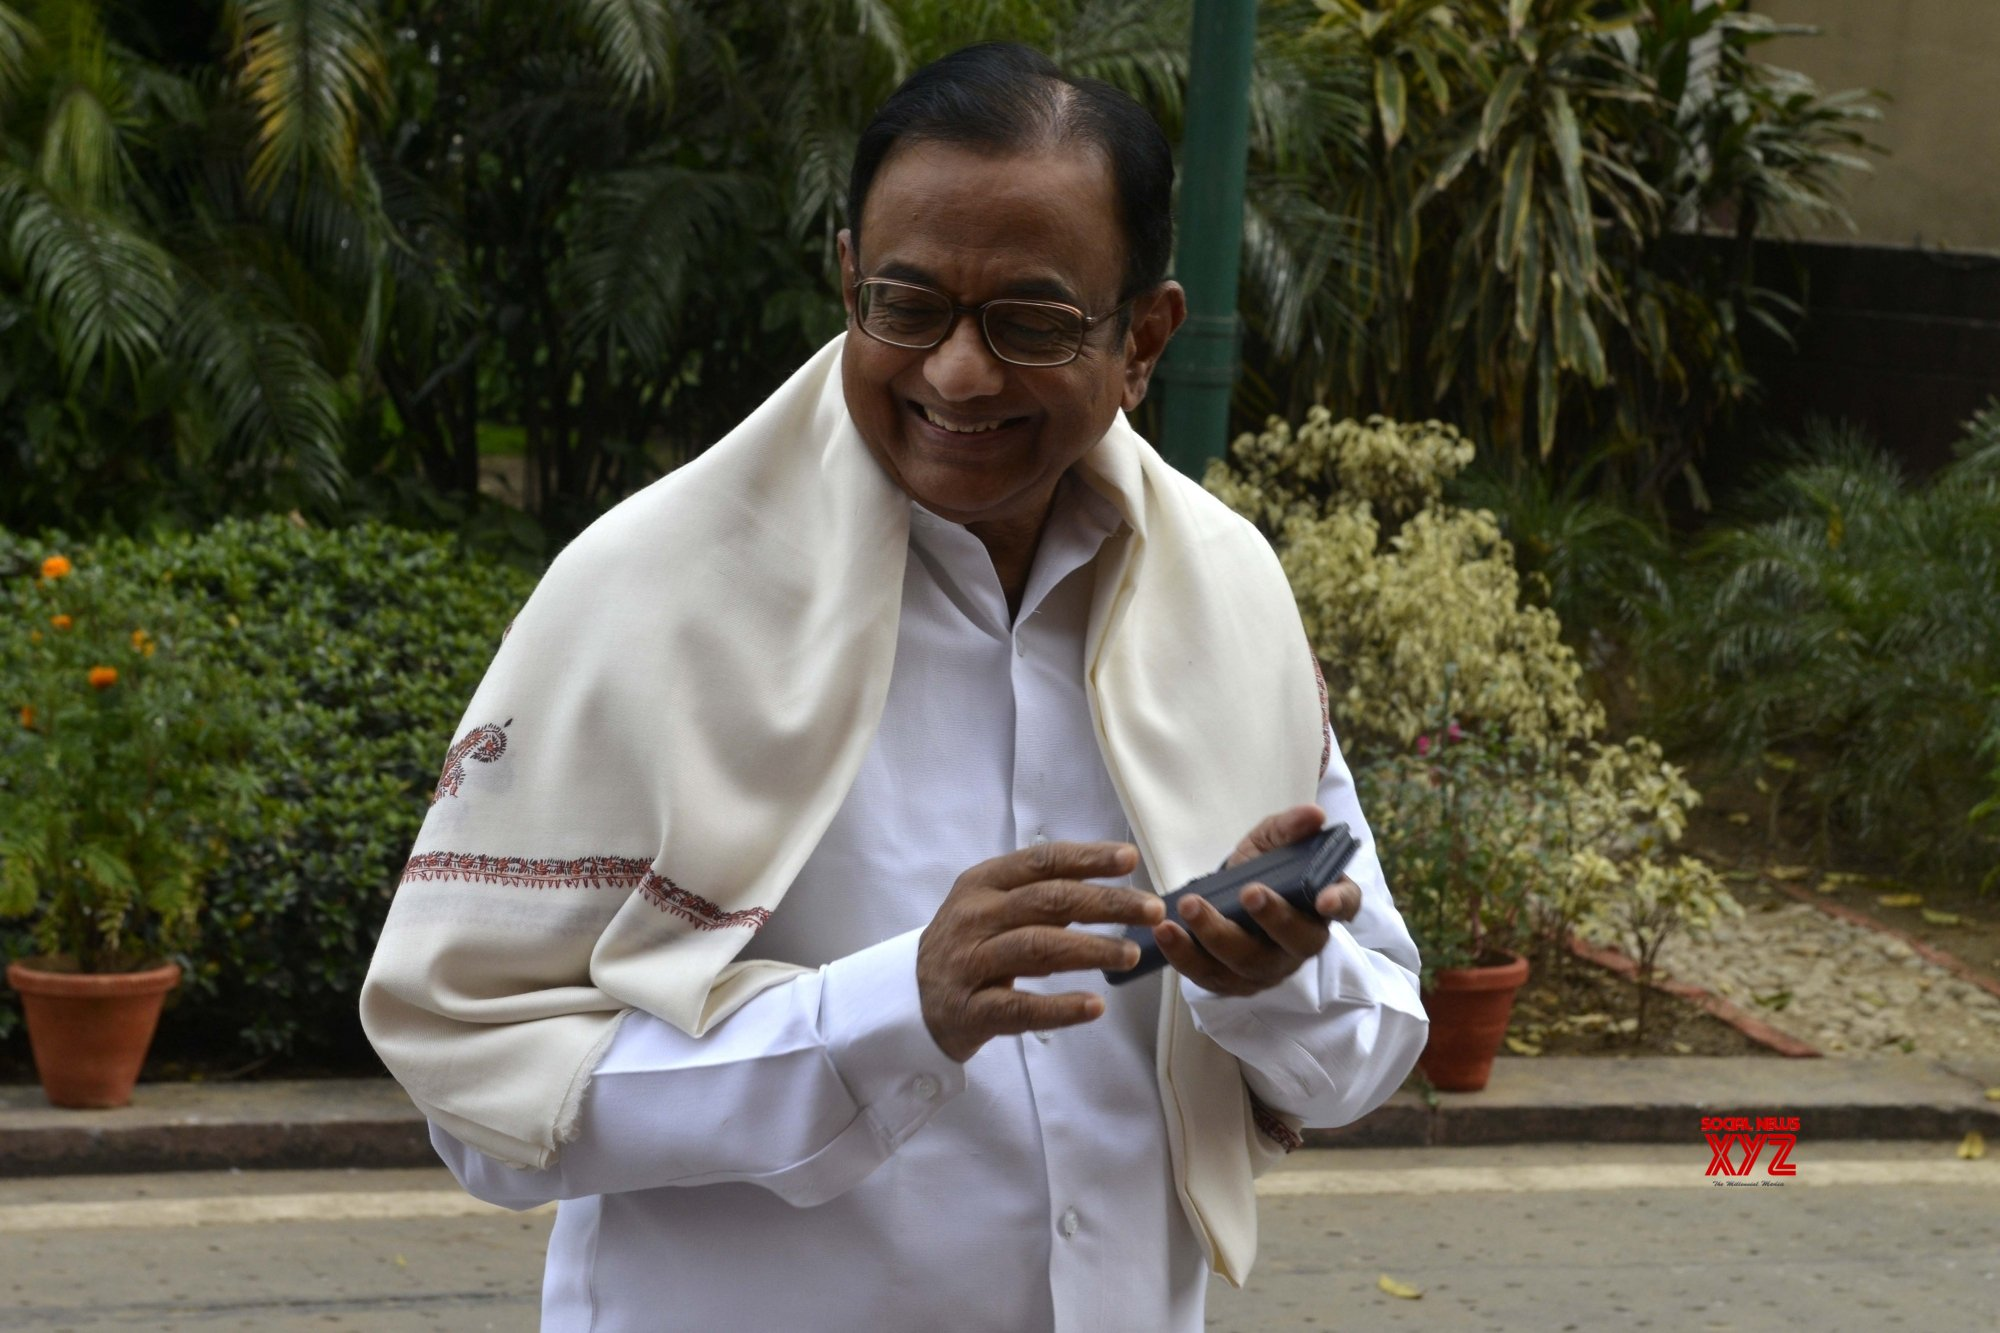 Not a single charge framed against me in 106 days: Chidambaram